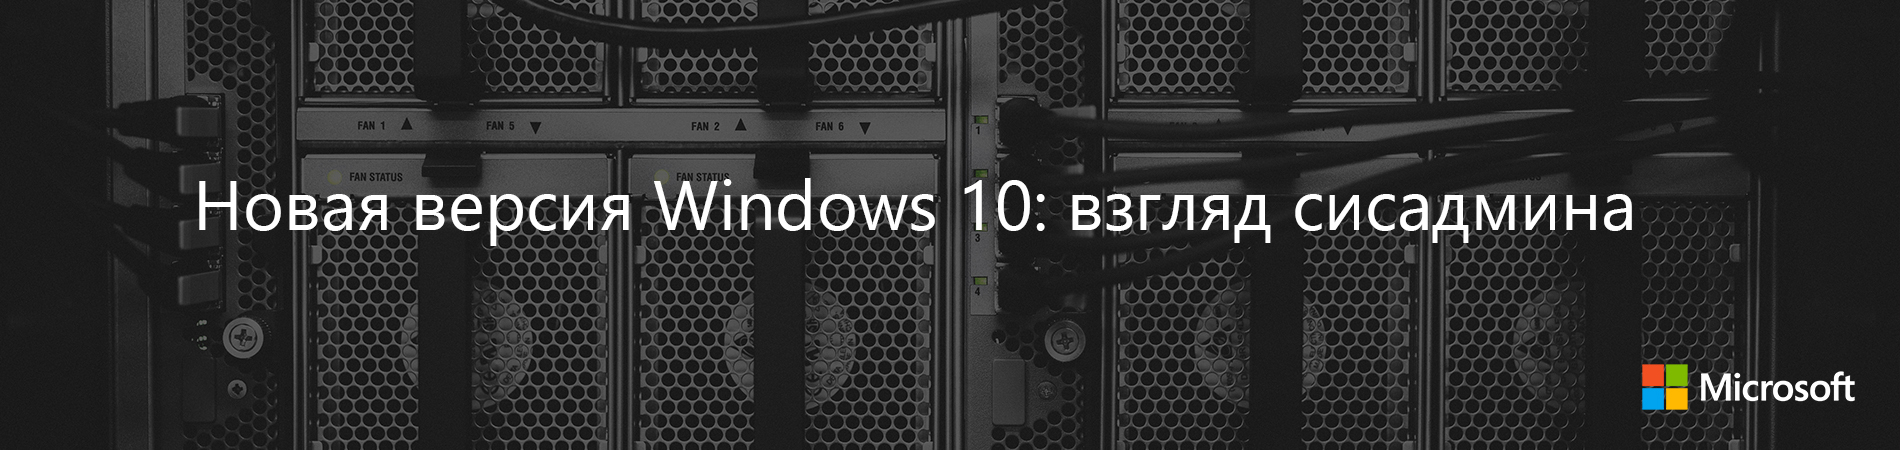 Новая версия Windows 10: взгляд сисадмина